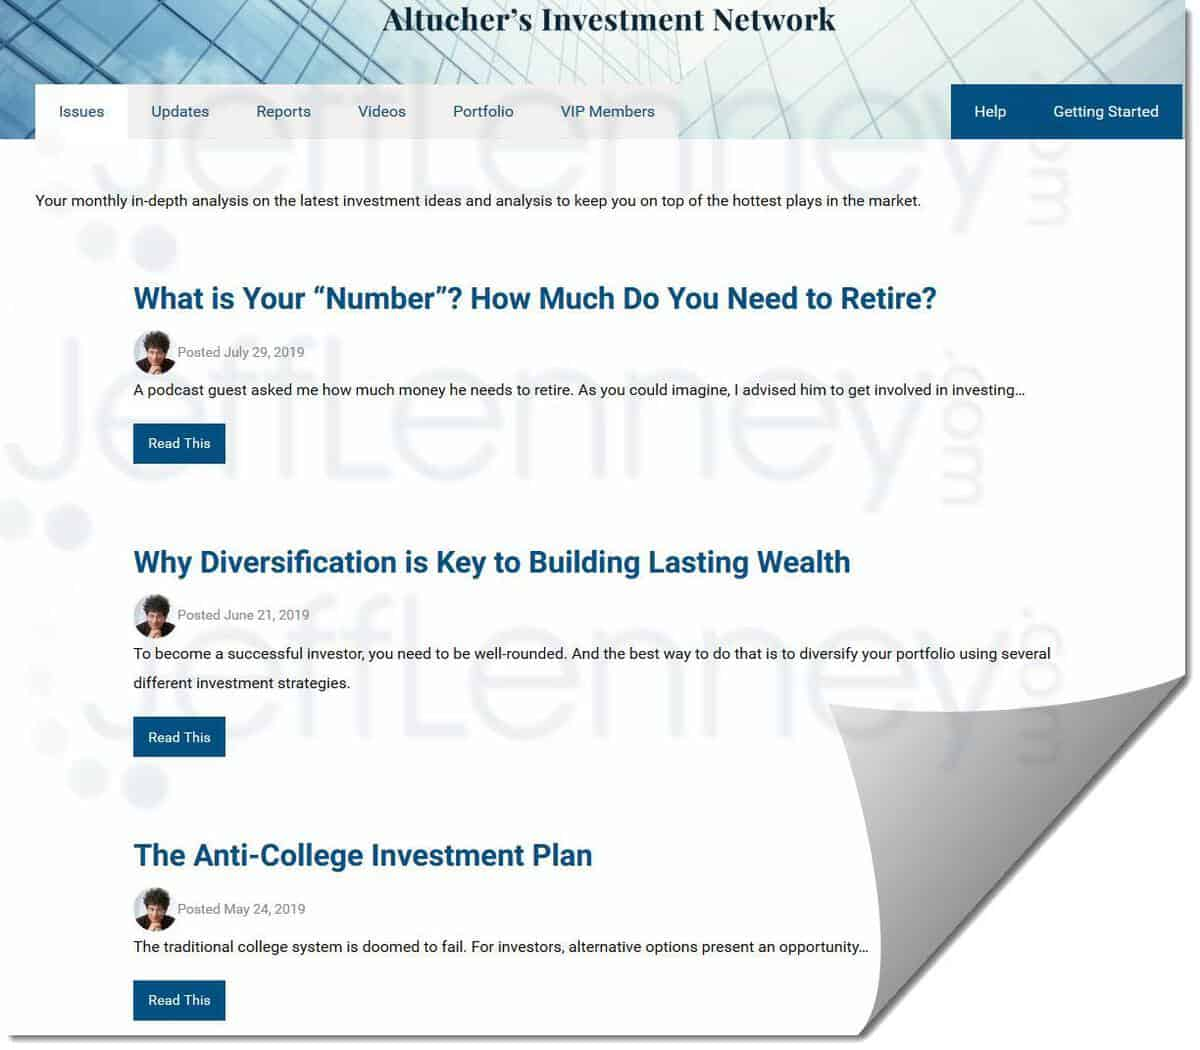 The Monthly Newsletter Issues